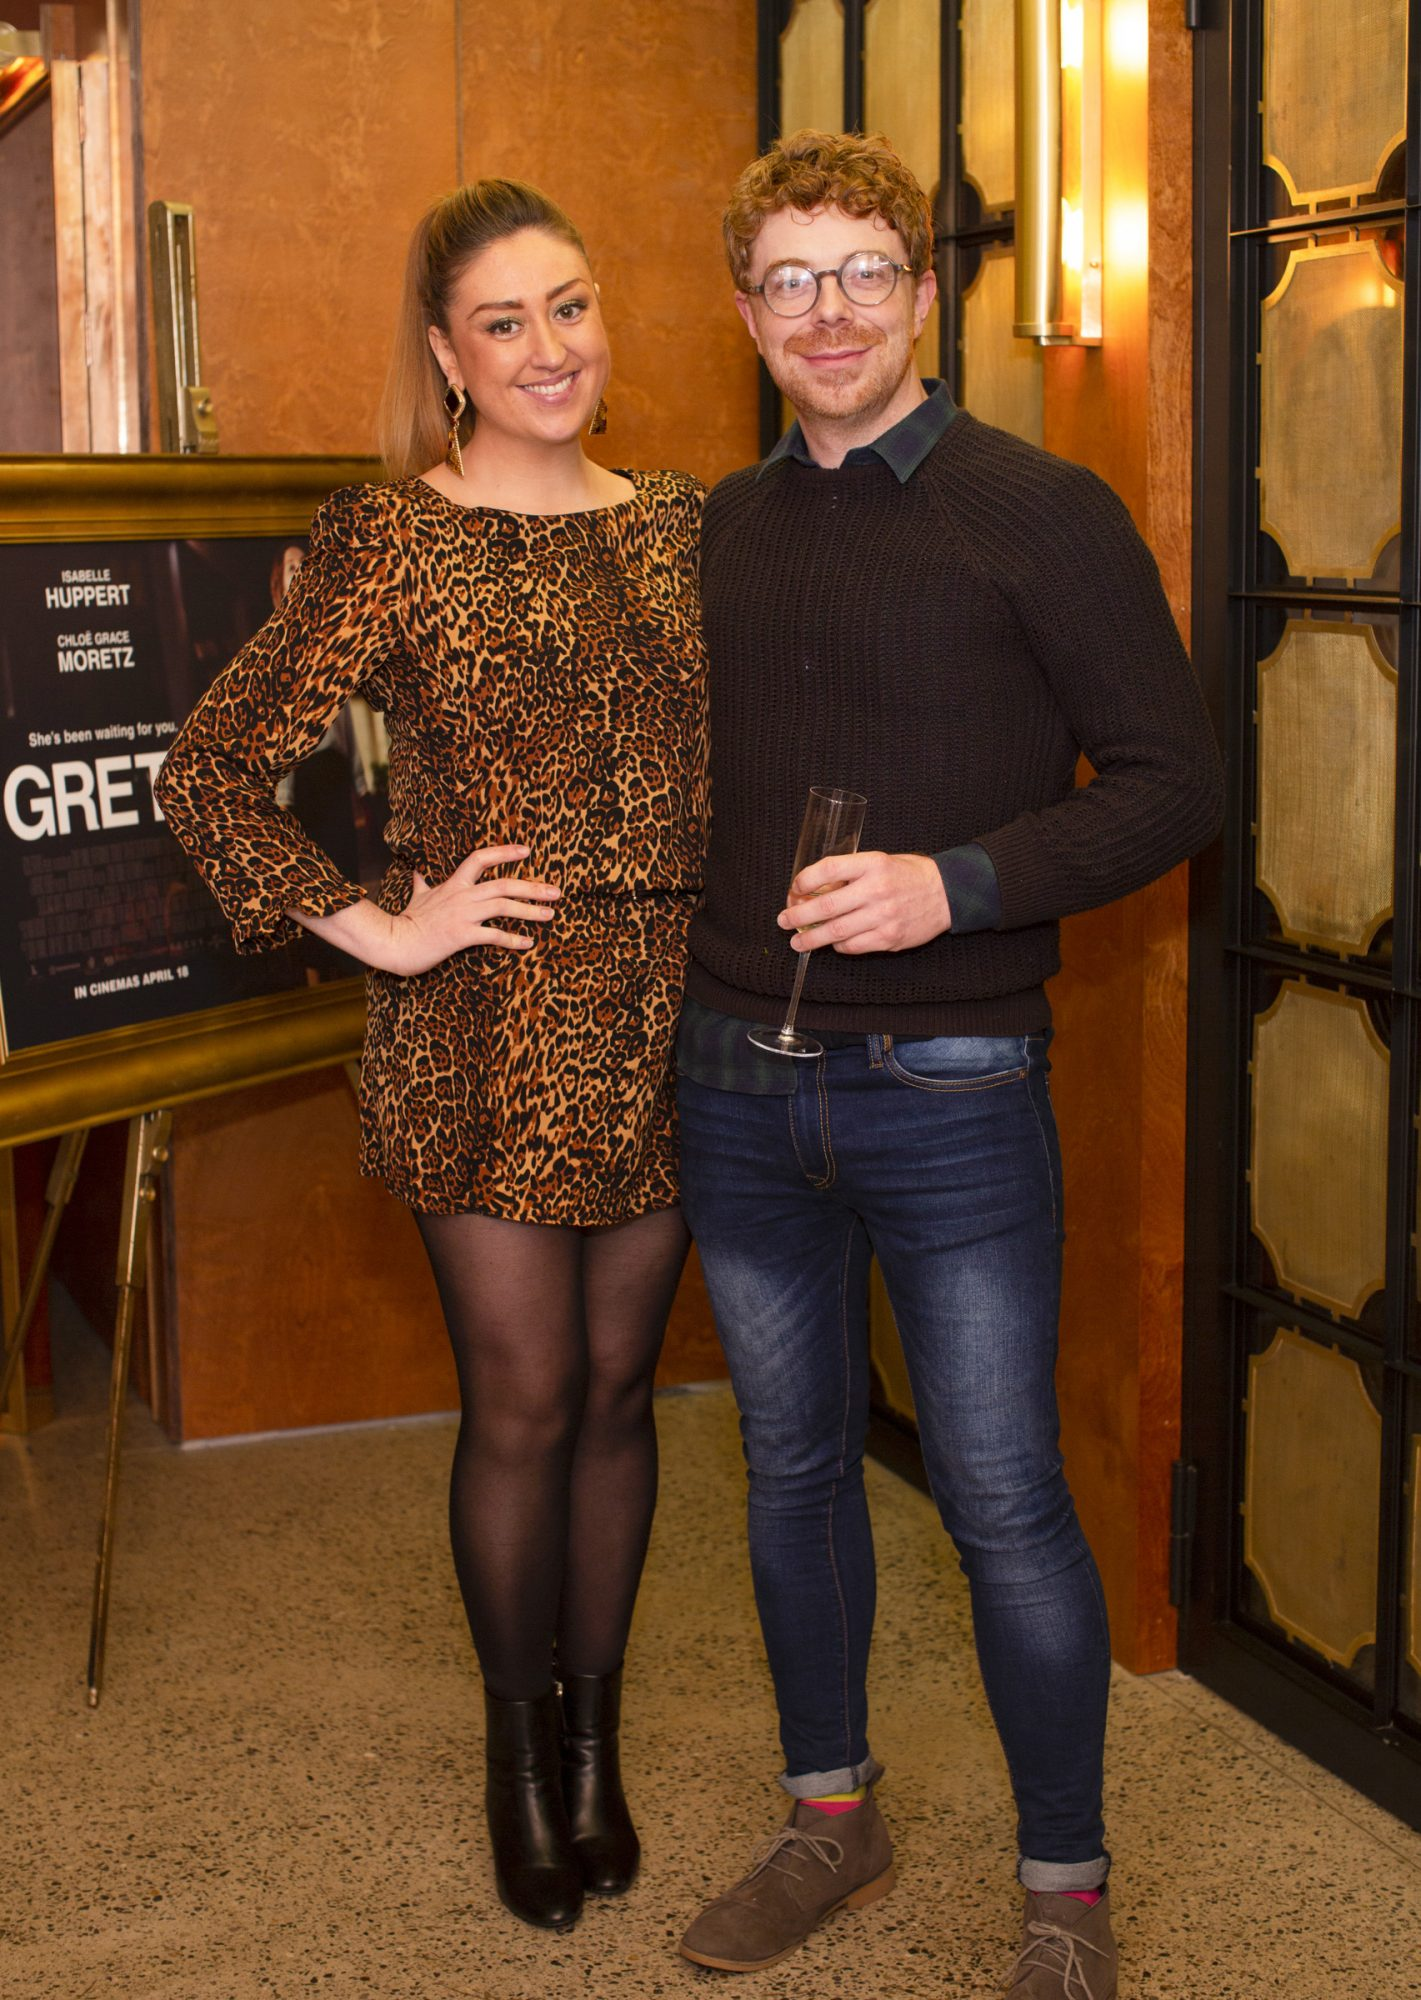 Linda Burke & John O'Malley pictured at a special preview screening of GRETA at The Stella Theatre, Ranelagh. GRETA, directed by Academy Award®-winner Neil Jordan and starring Chloë Grace Moretz and Isabelle Huppert, hits cinemas across Ireland this Thursday 18th April. Photo: Anthony Woods